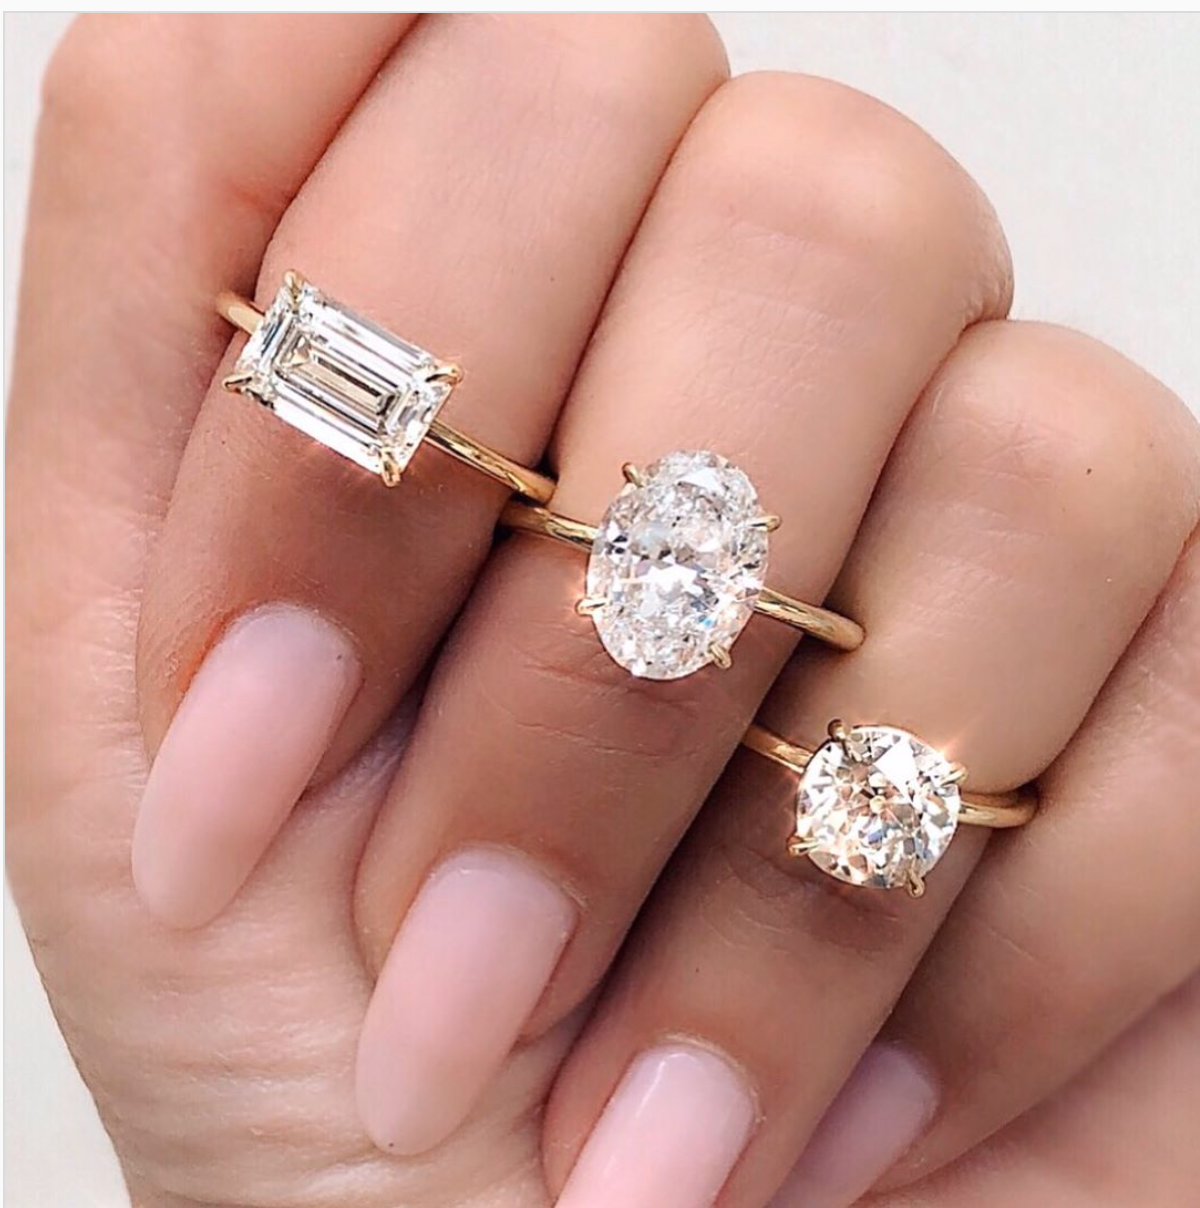 27 Engagement Ring Designers to Follow If You're Already Imagining Your Ring